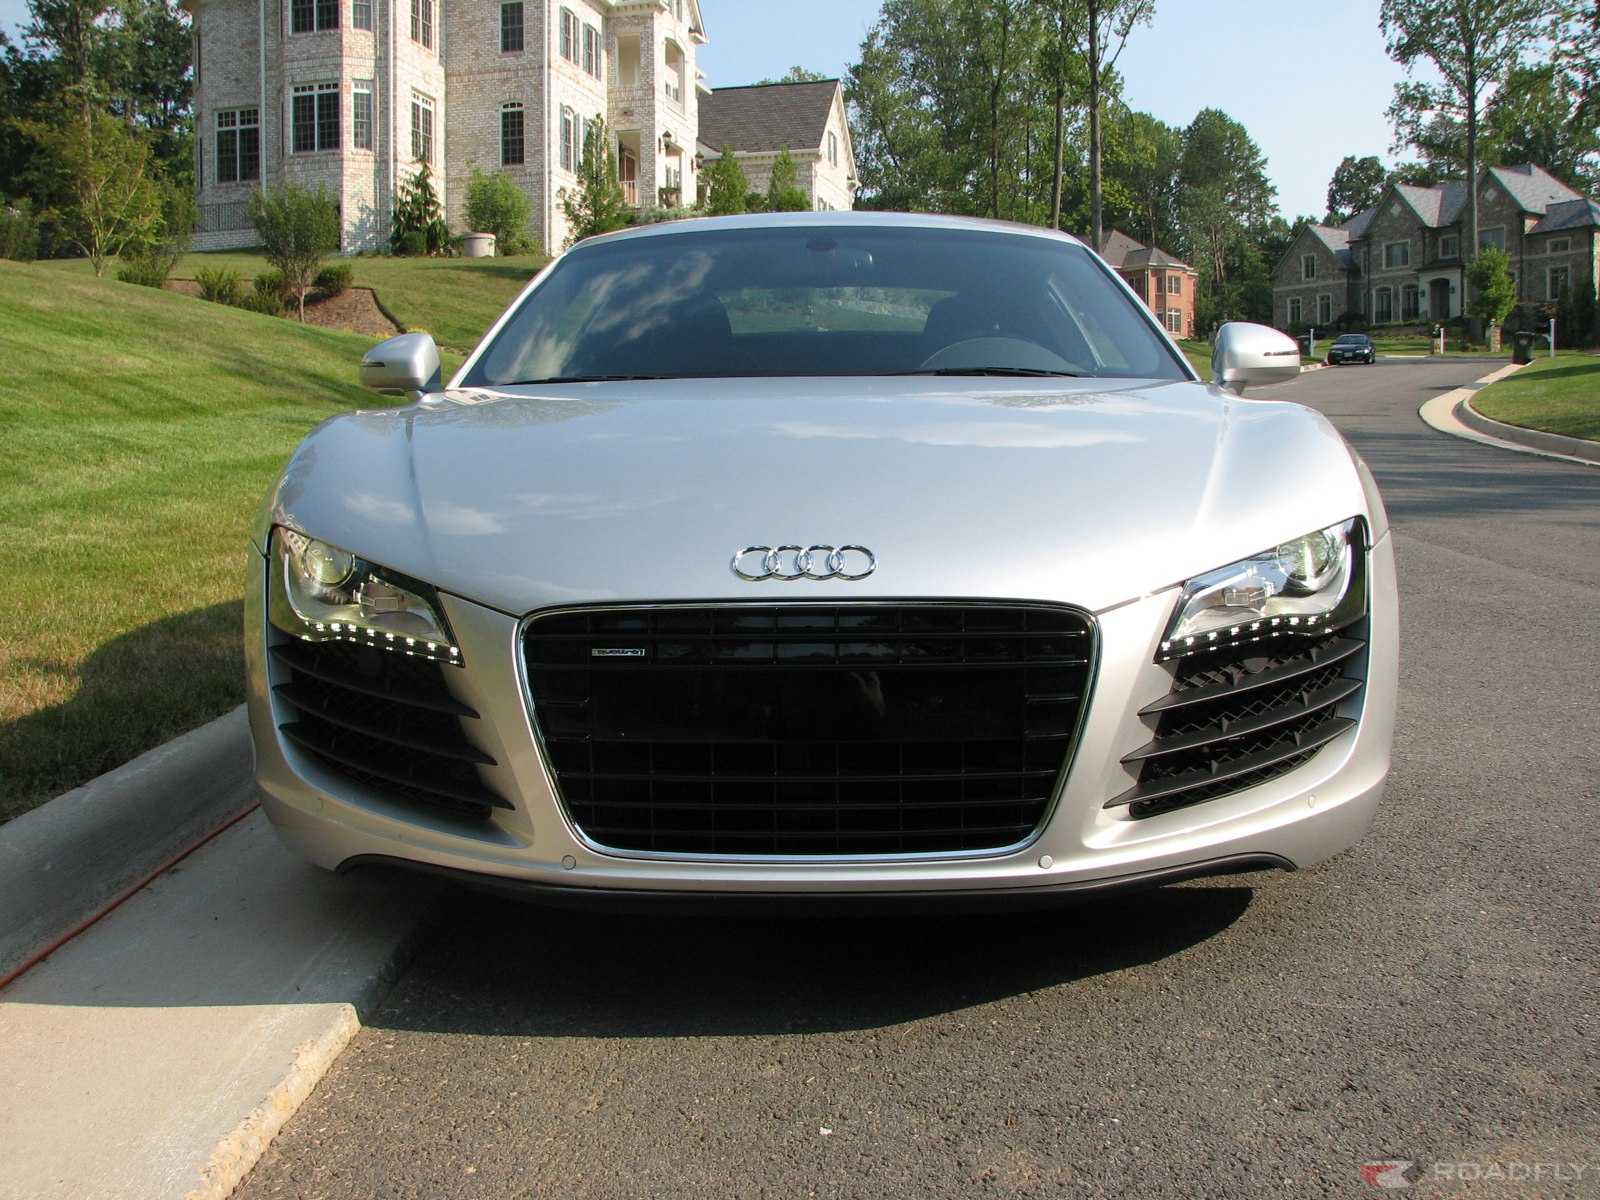 Pictures of audi r8 2008 #1